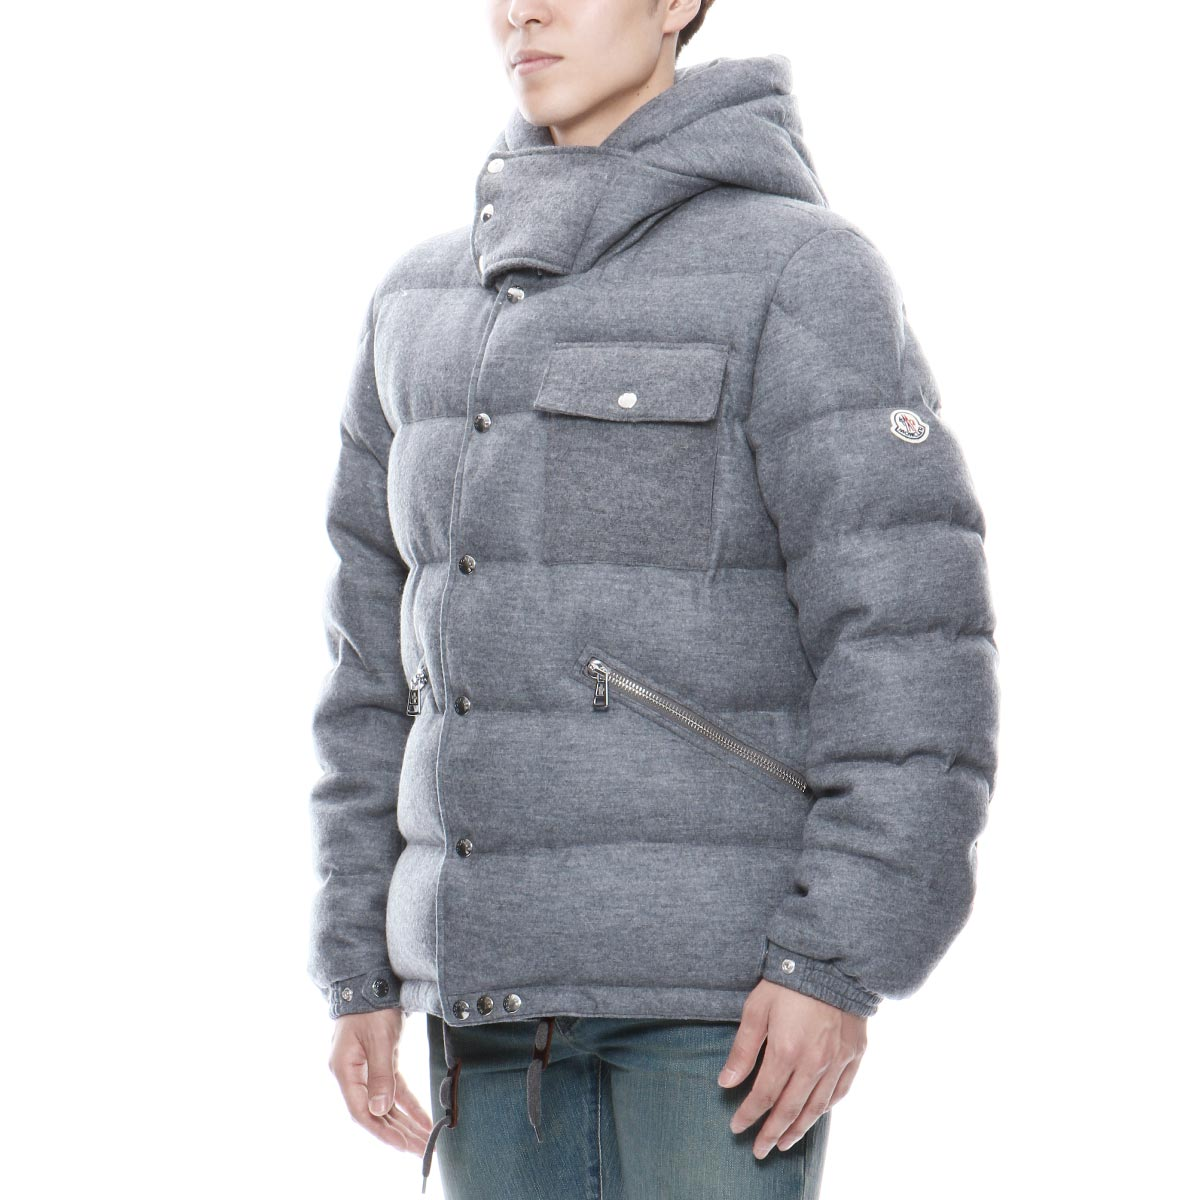 Down jacket LIORAN Rio orchid GREY gray with Monk rail MONCLER outer men LIORAN 549H6 915 food